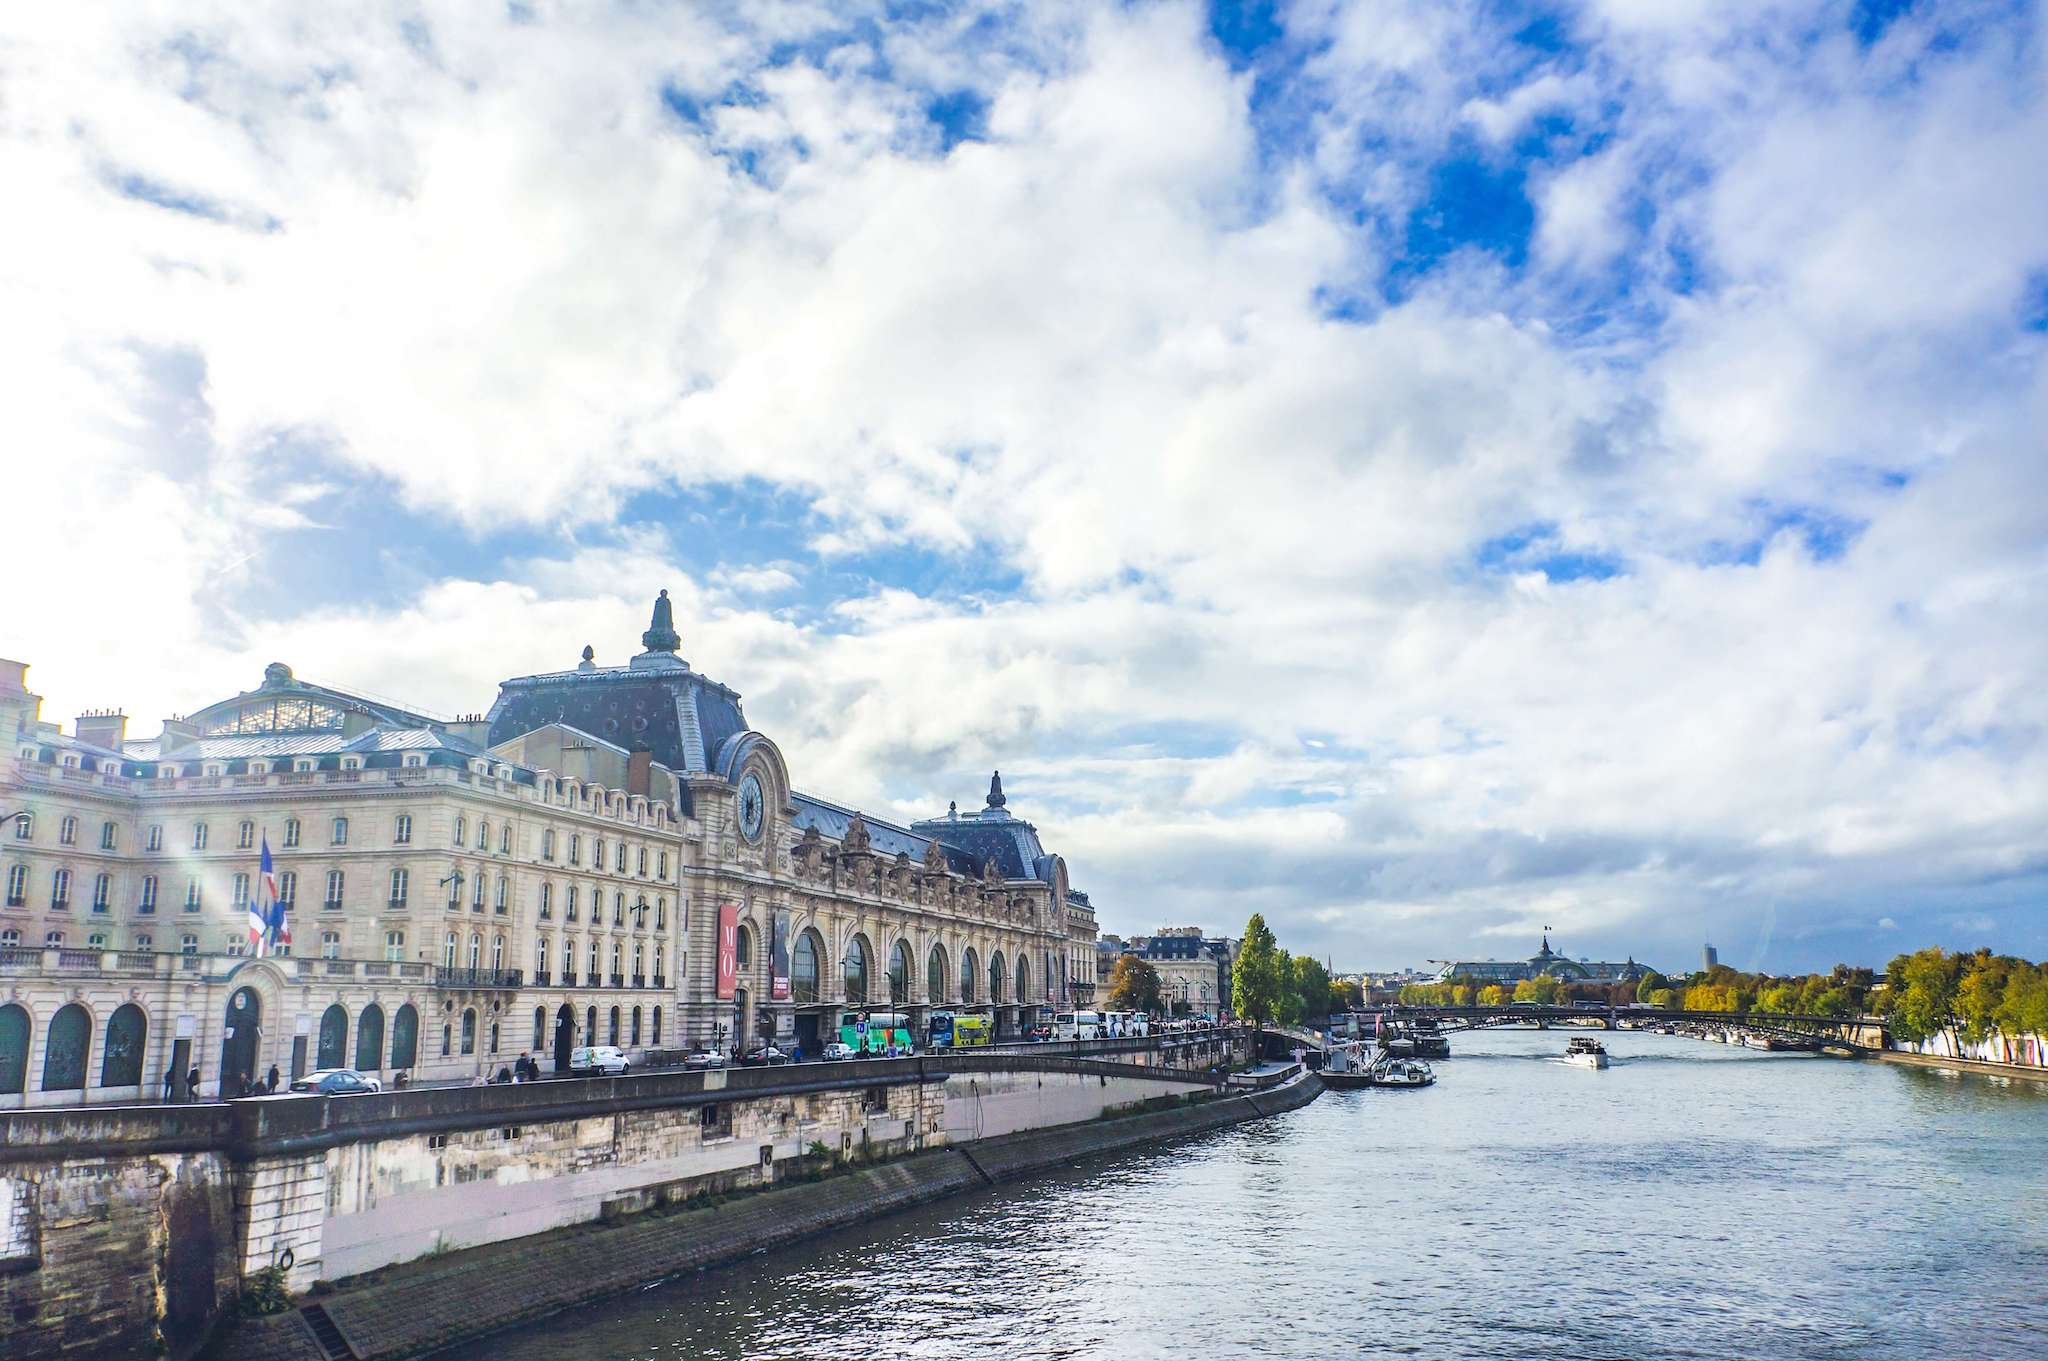 The outside of the D'Orsay Museum, on the Seine river in Paris. The sky is blue with some clouds, the sun is shining, the trees along the river are green. There is a boat going down the river.